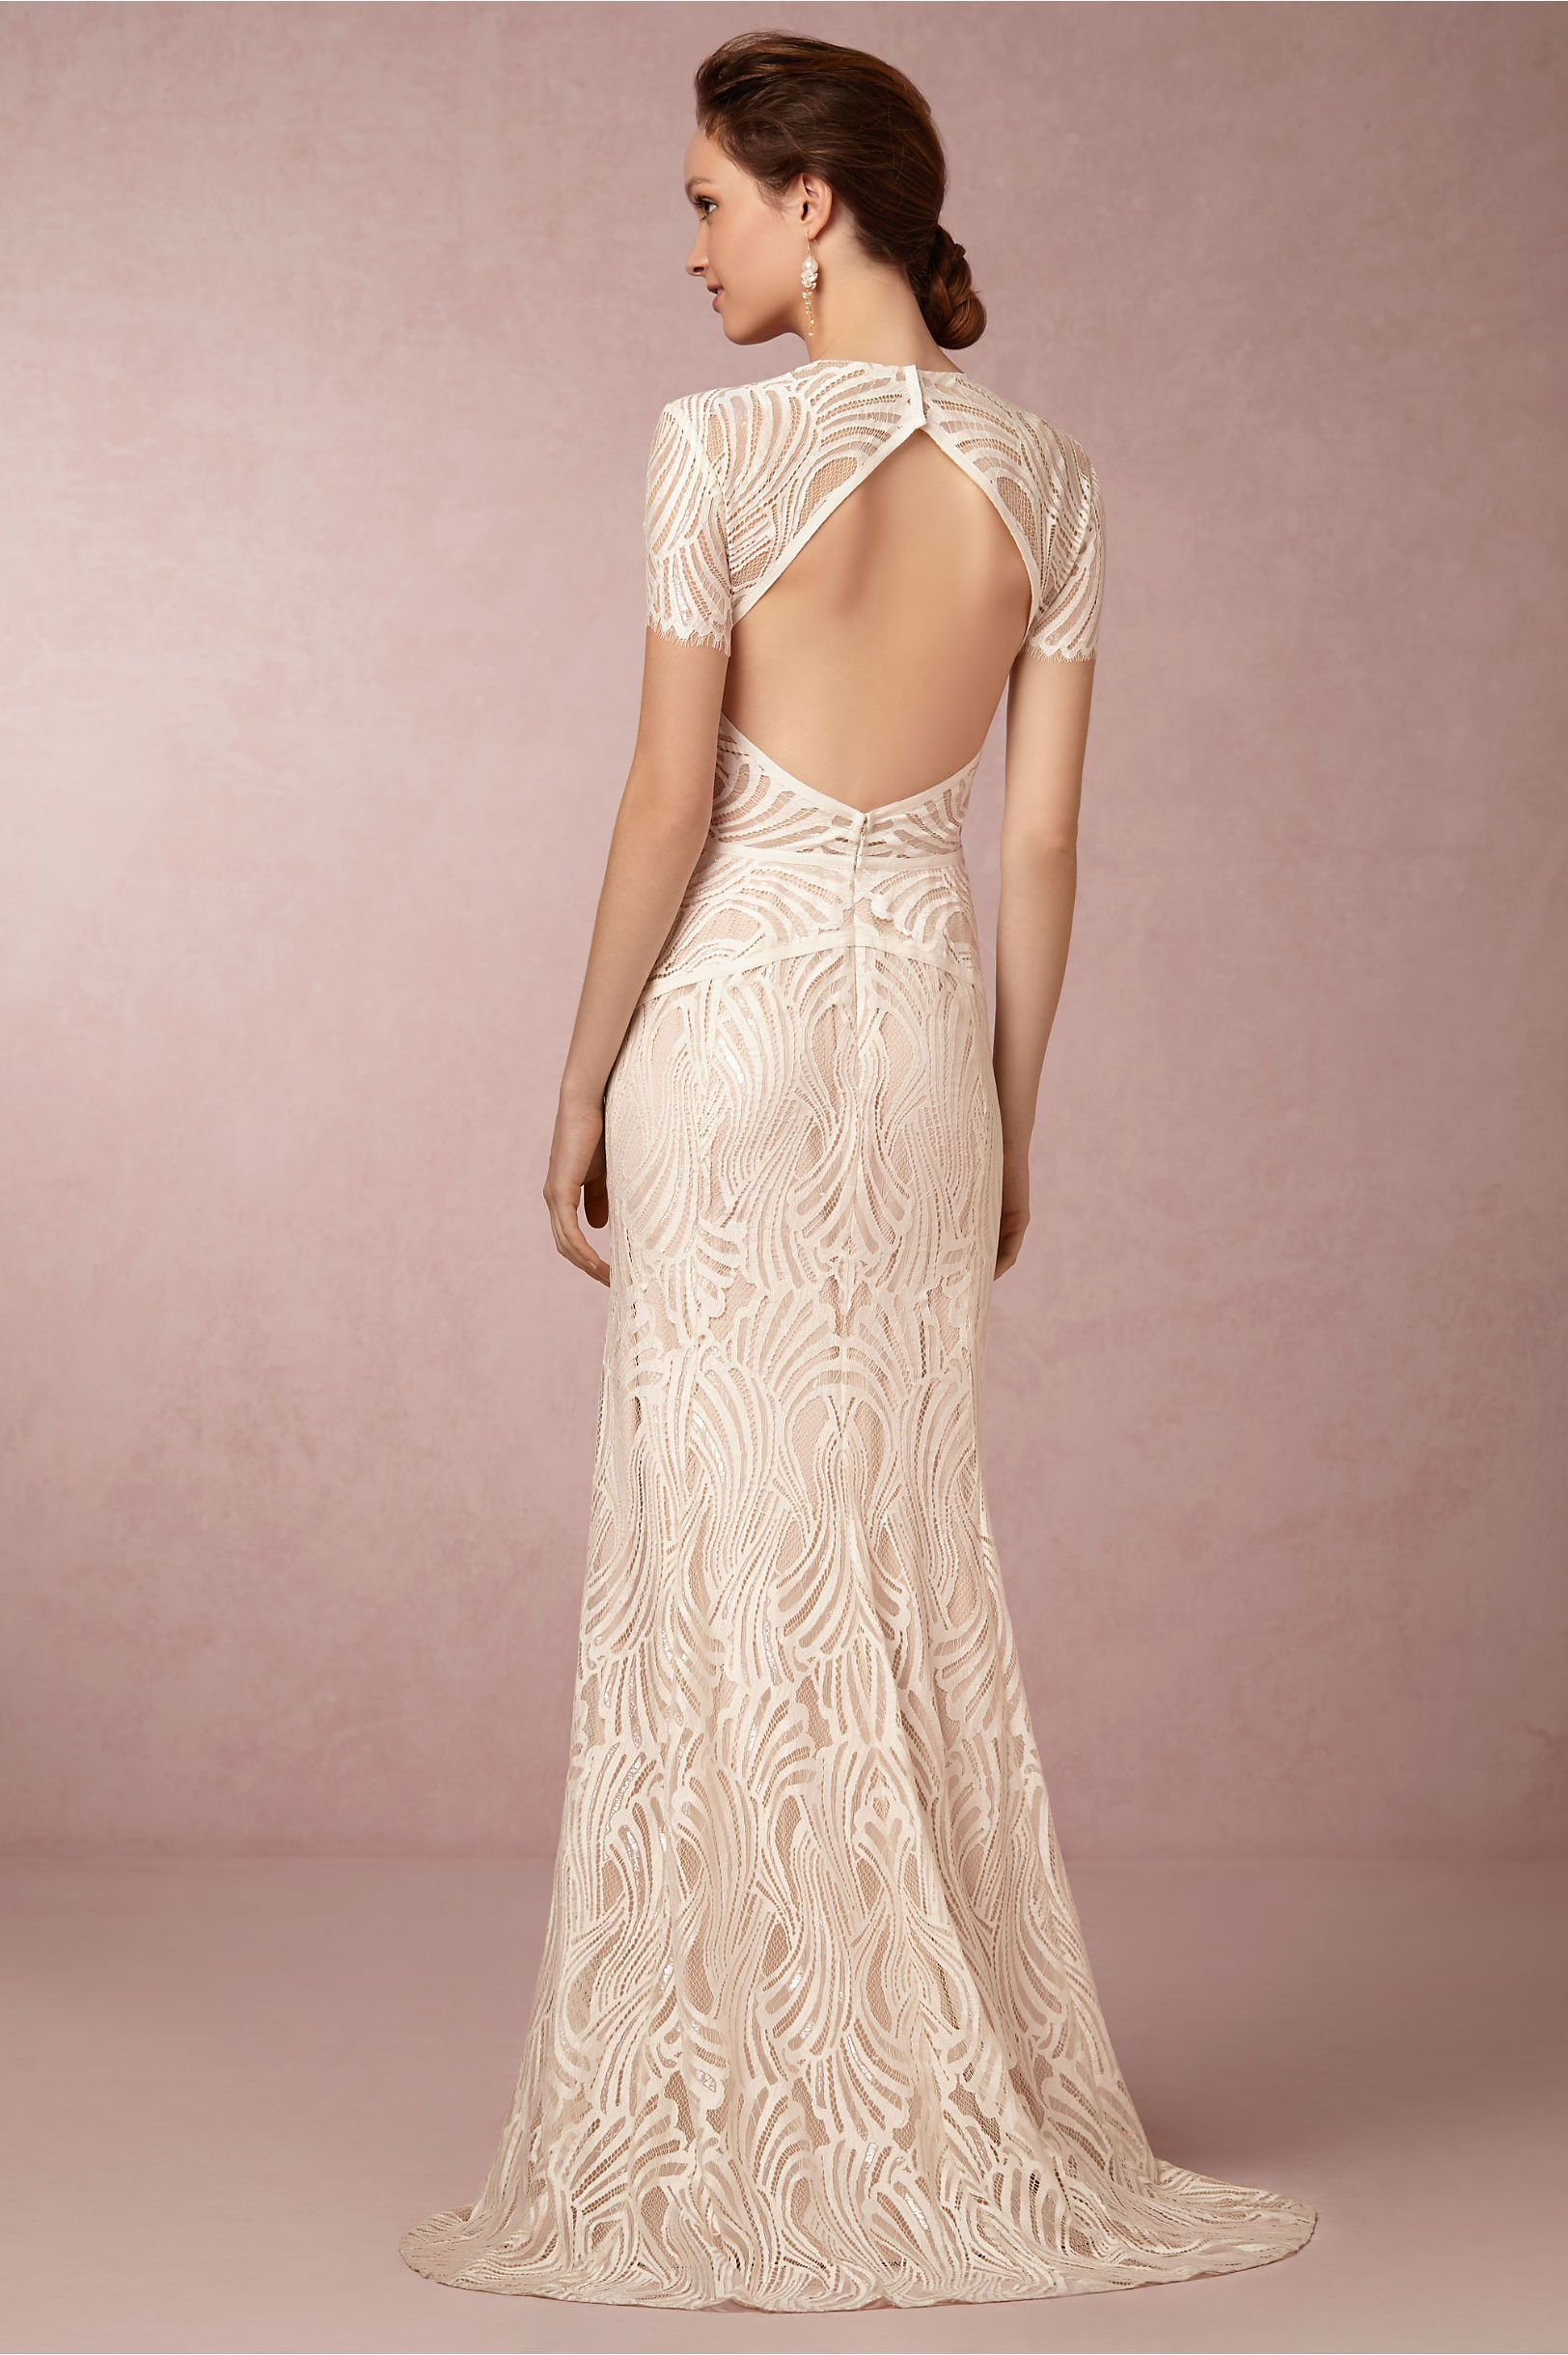 Beilin Gown from @BHLDN | vestidos de novia | Pinterest | Vestidos ...